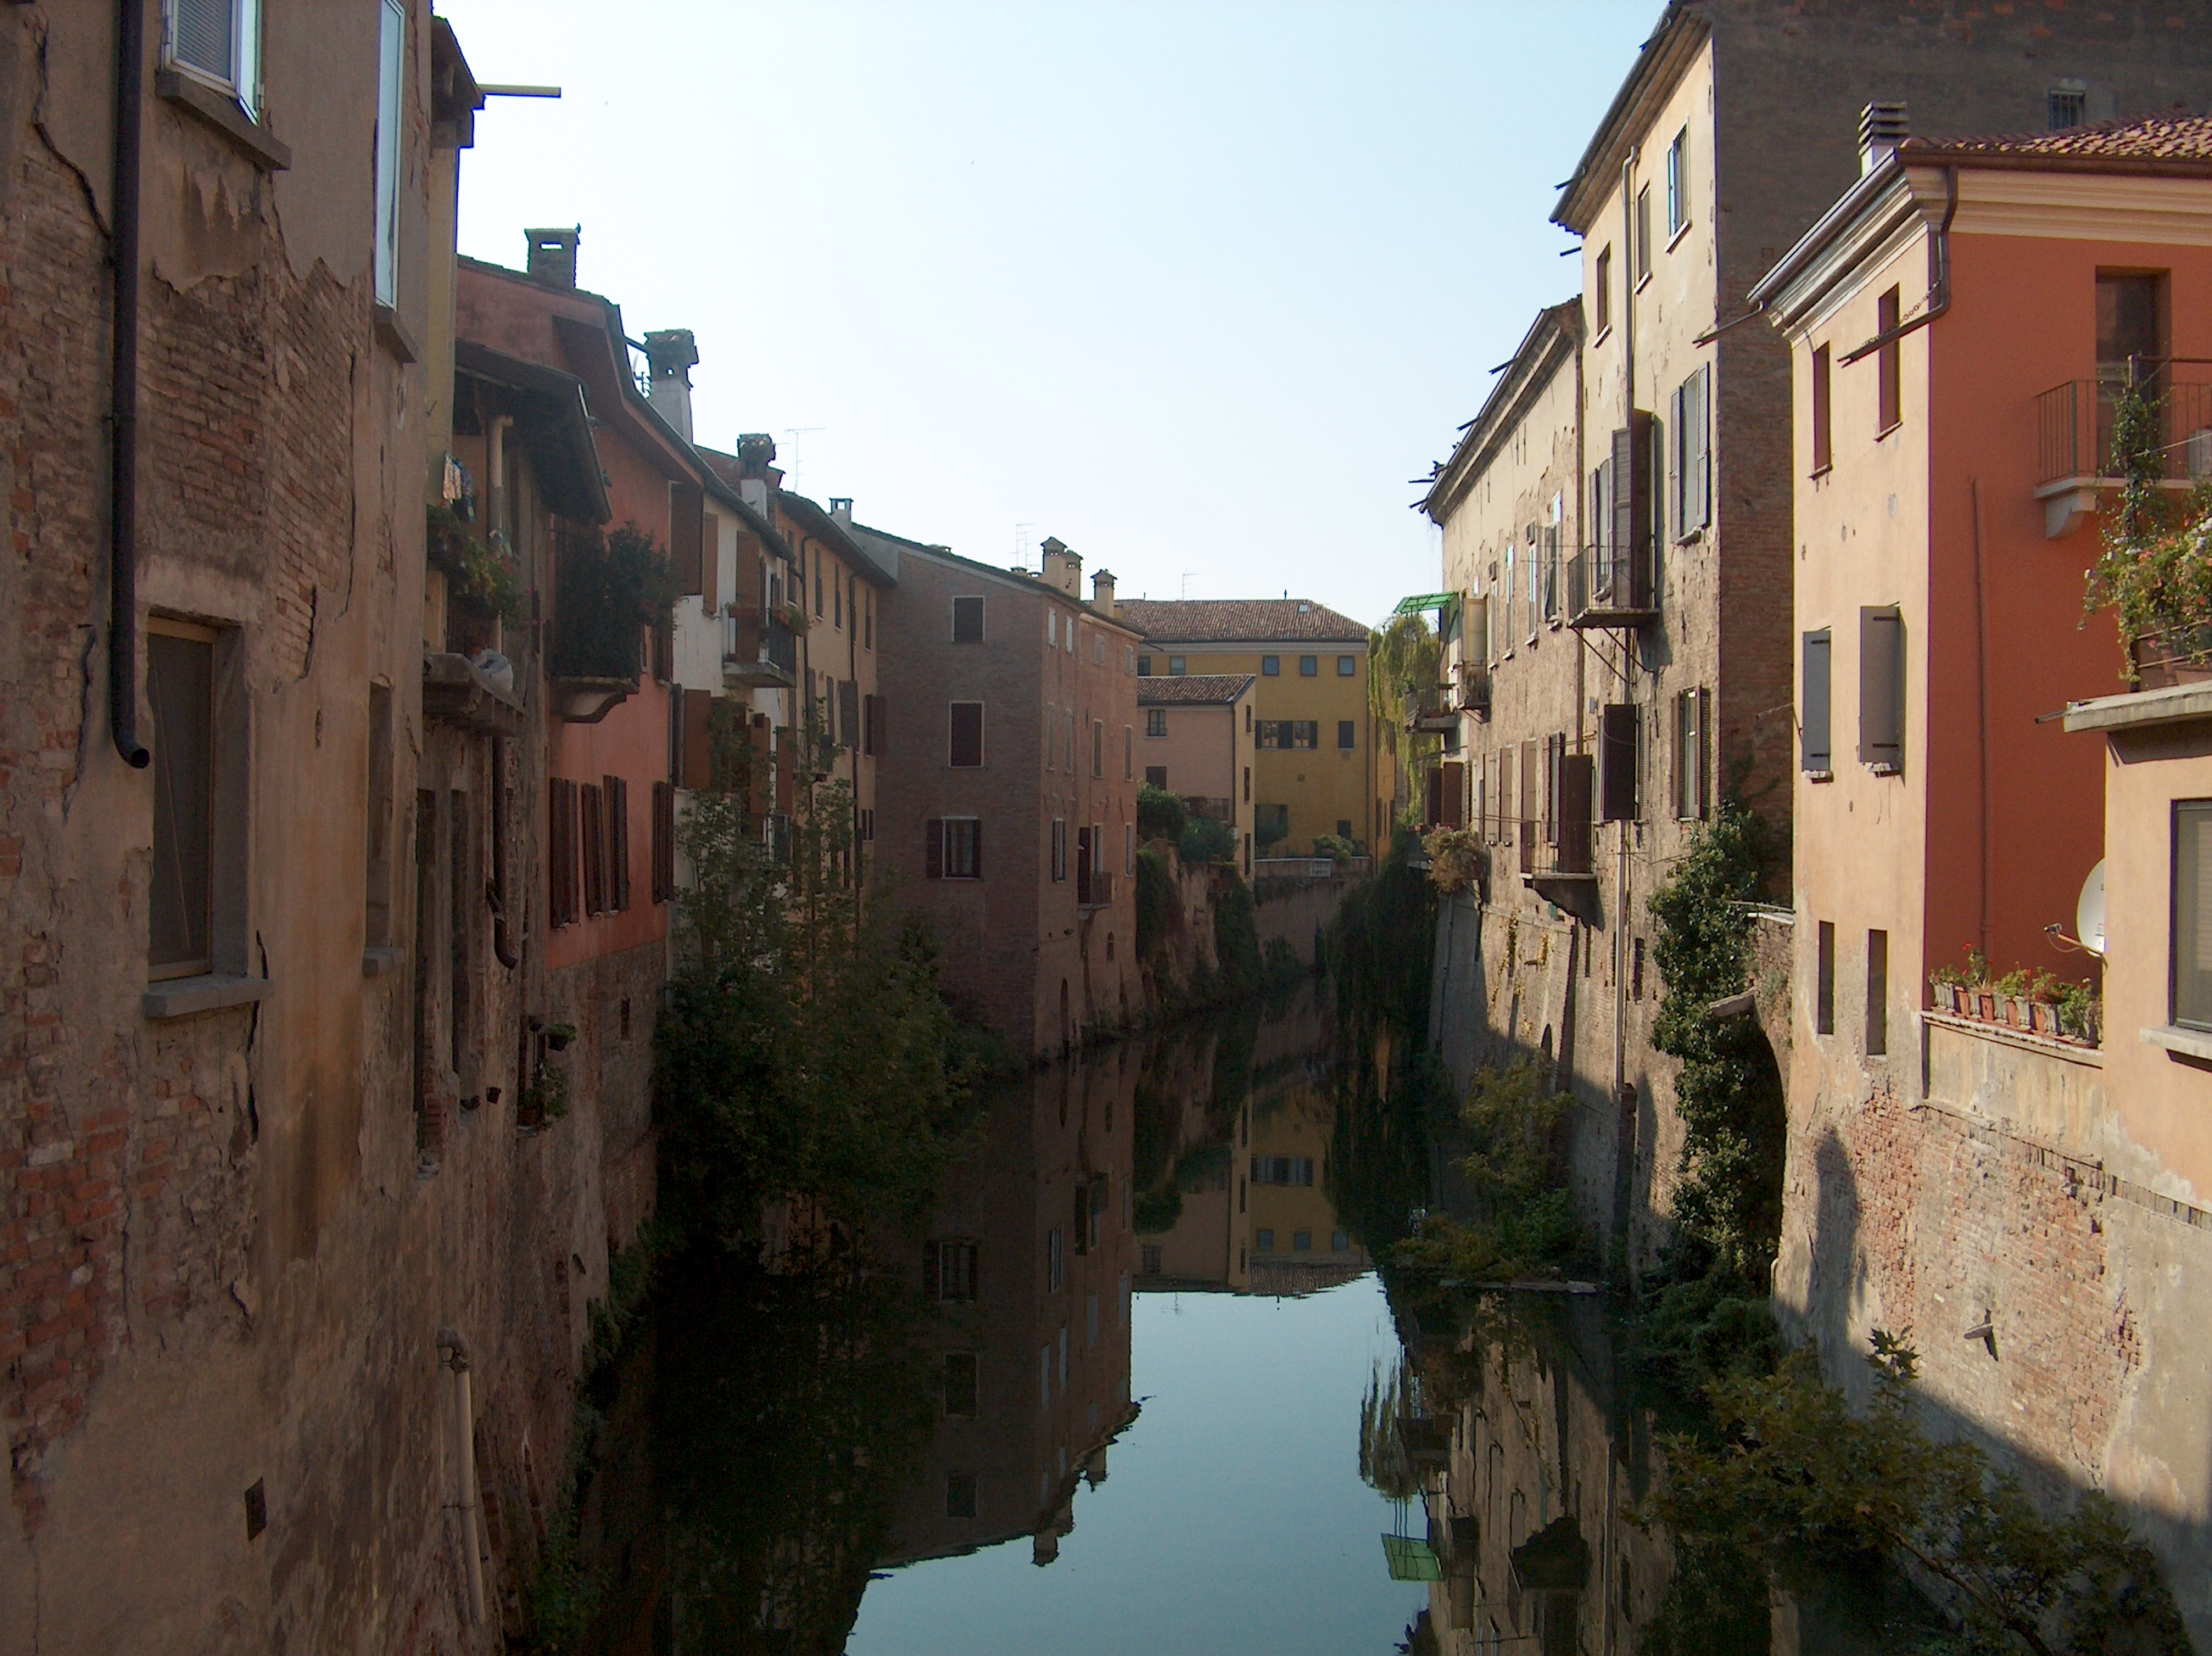 Mantova Italy  City pictures : Original file ‎ 2,608 × 1,952 pixels, file size: 2.32 MB, MIME ...